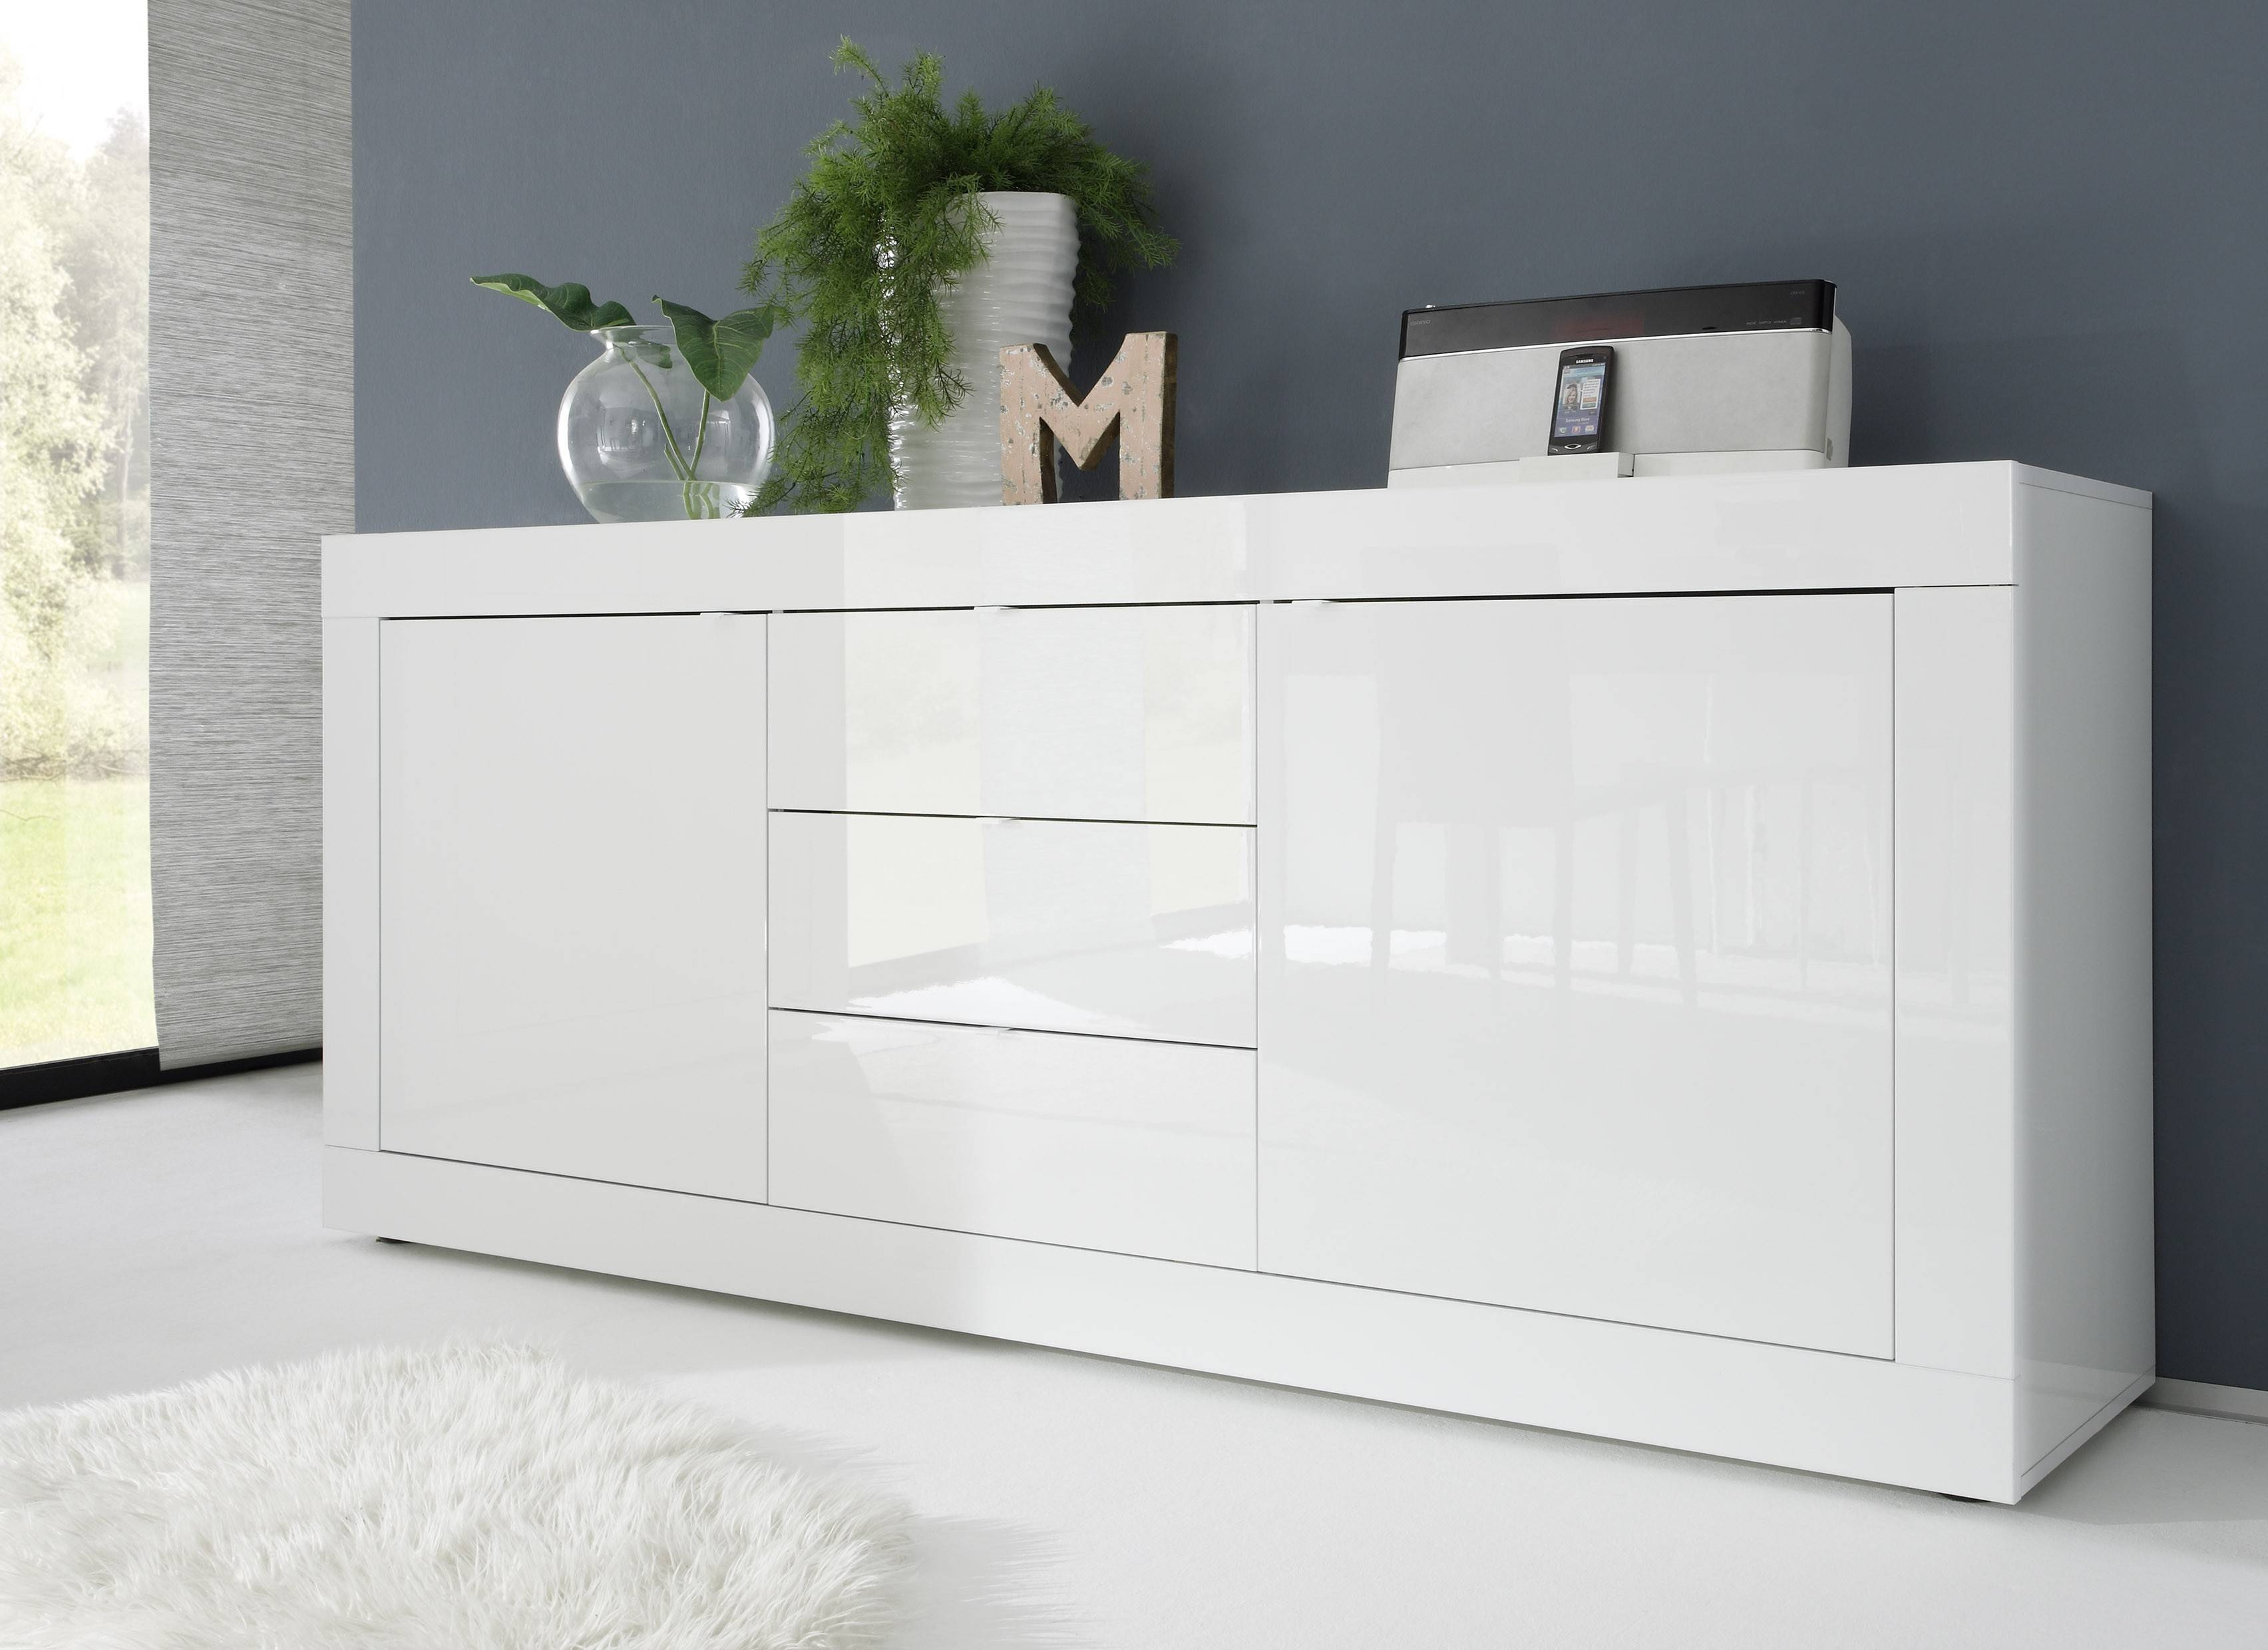 Beautiful Living Room Buffet Gallery Amazing Design Ideas Siteous Inside White Modern Sideboards Image 1